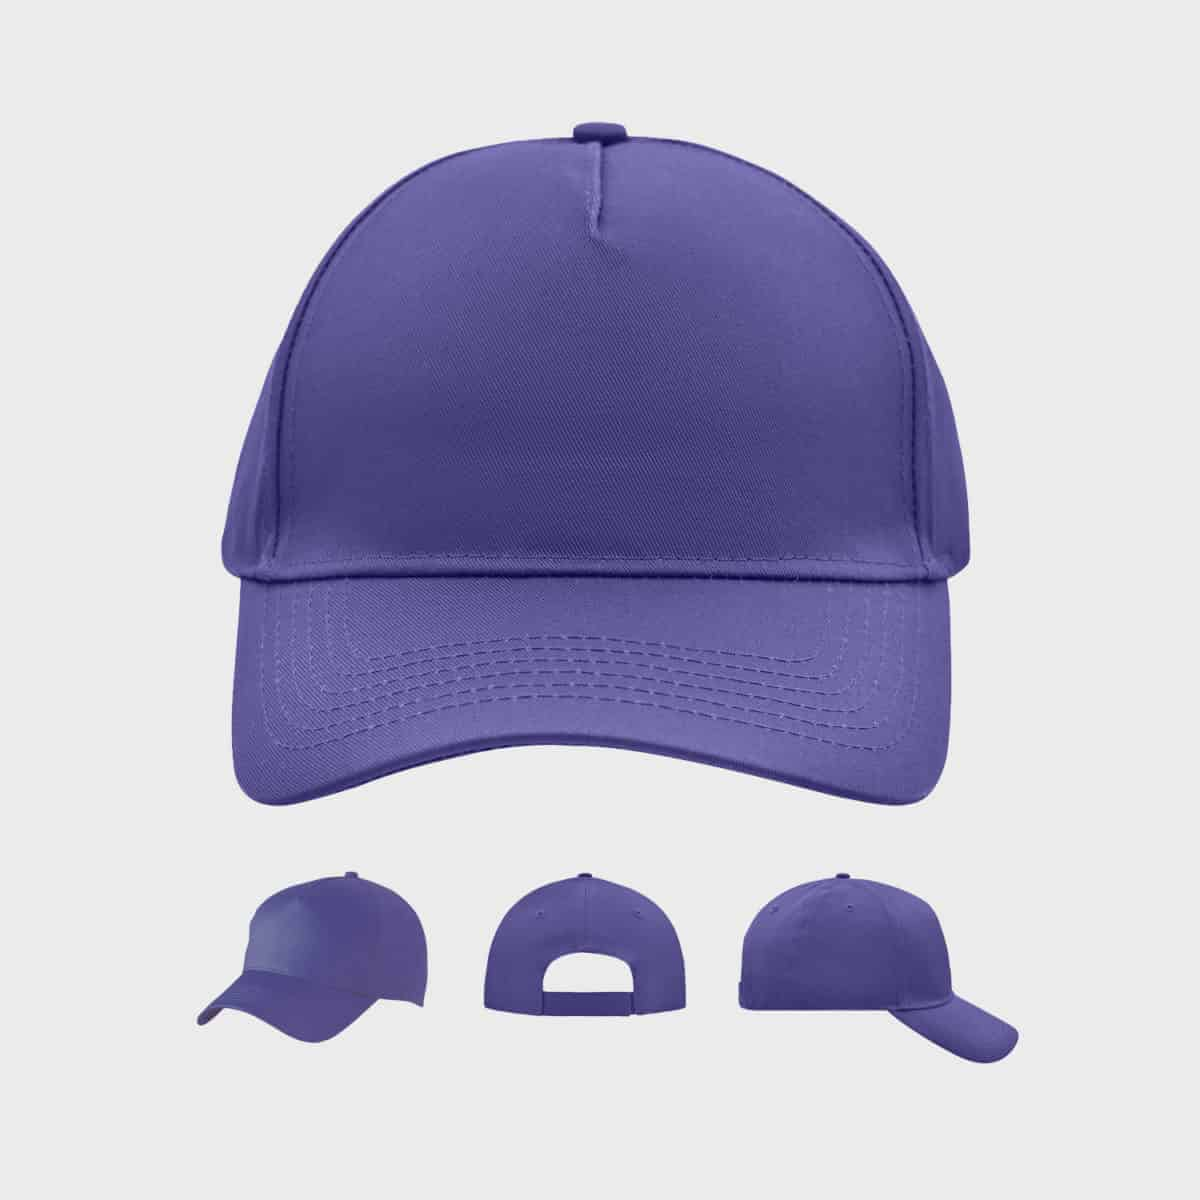 5-panel-beach-cap-mauve-kaufen-besticken_stickmanufaktur